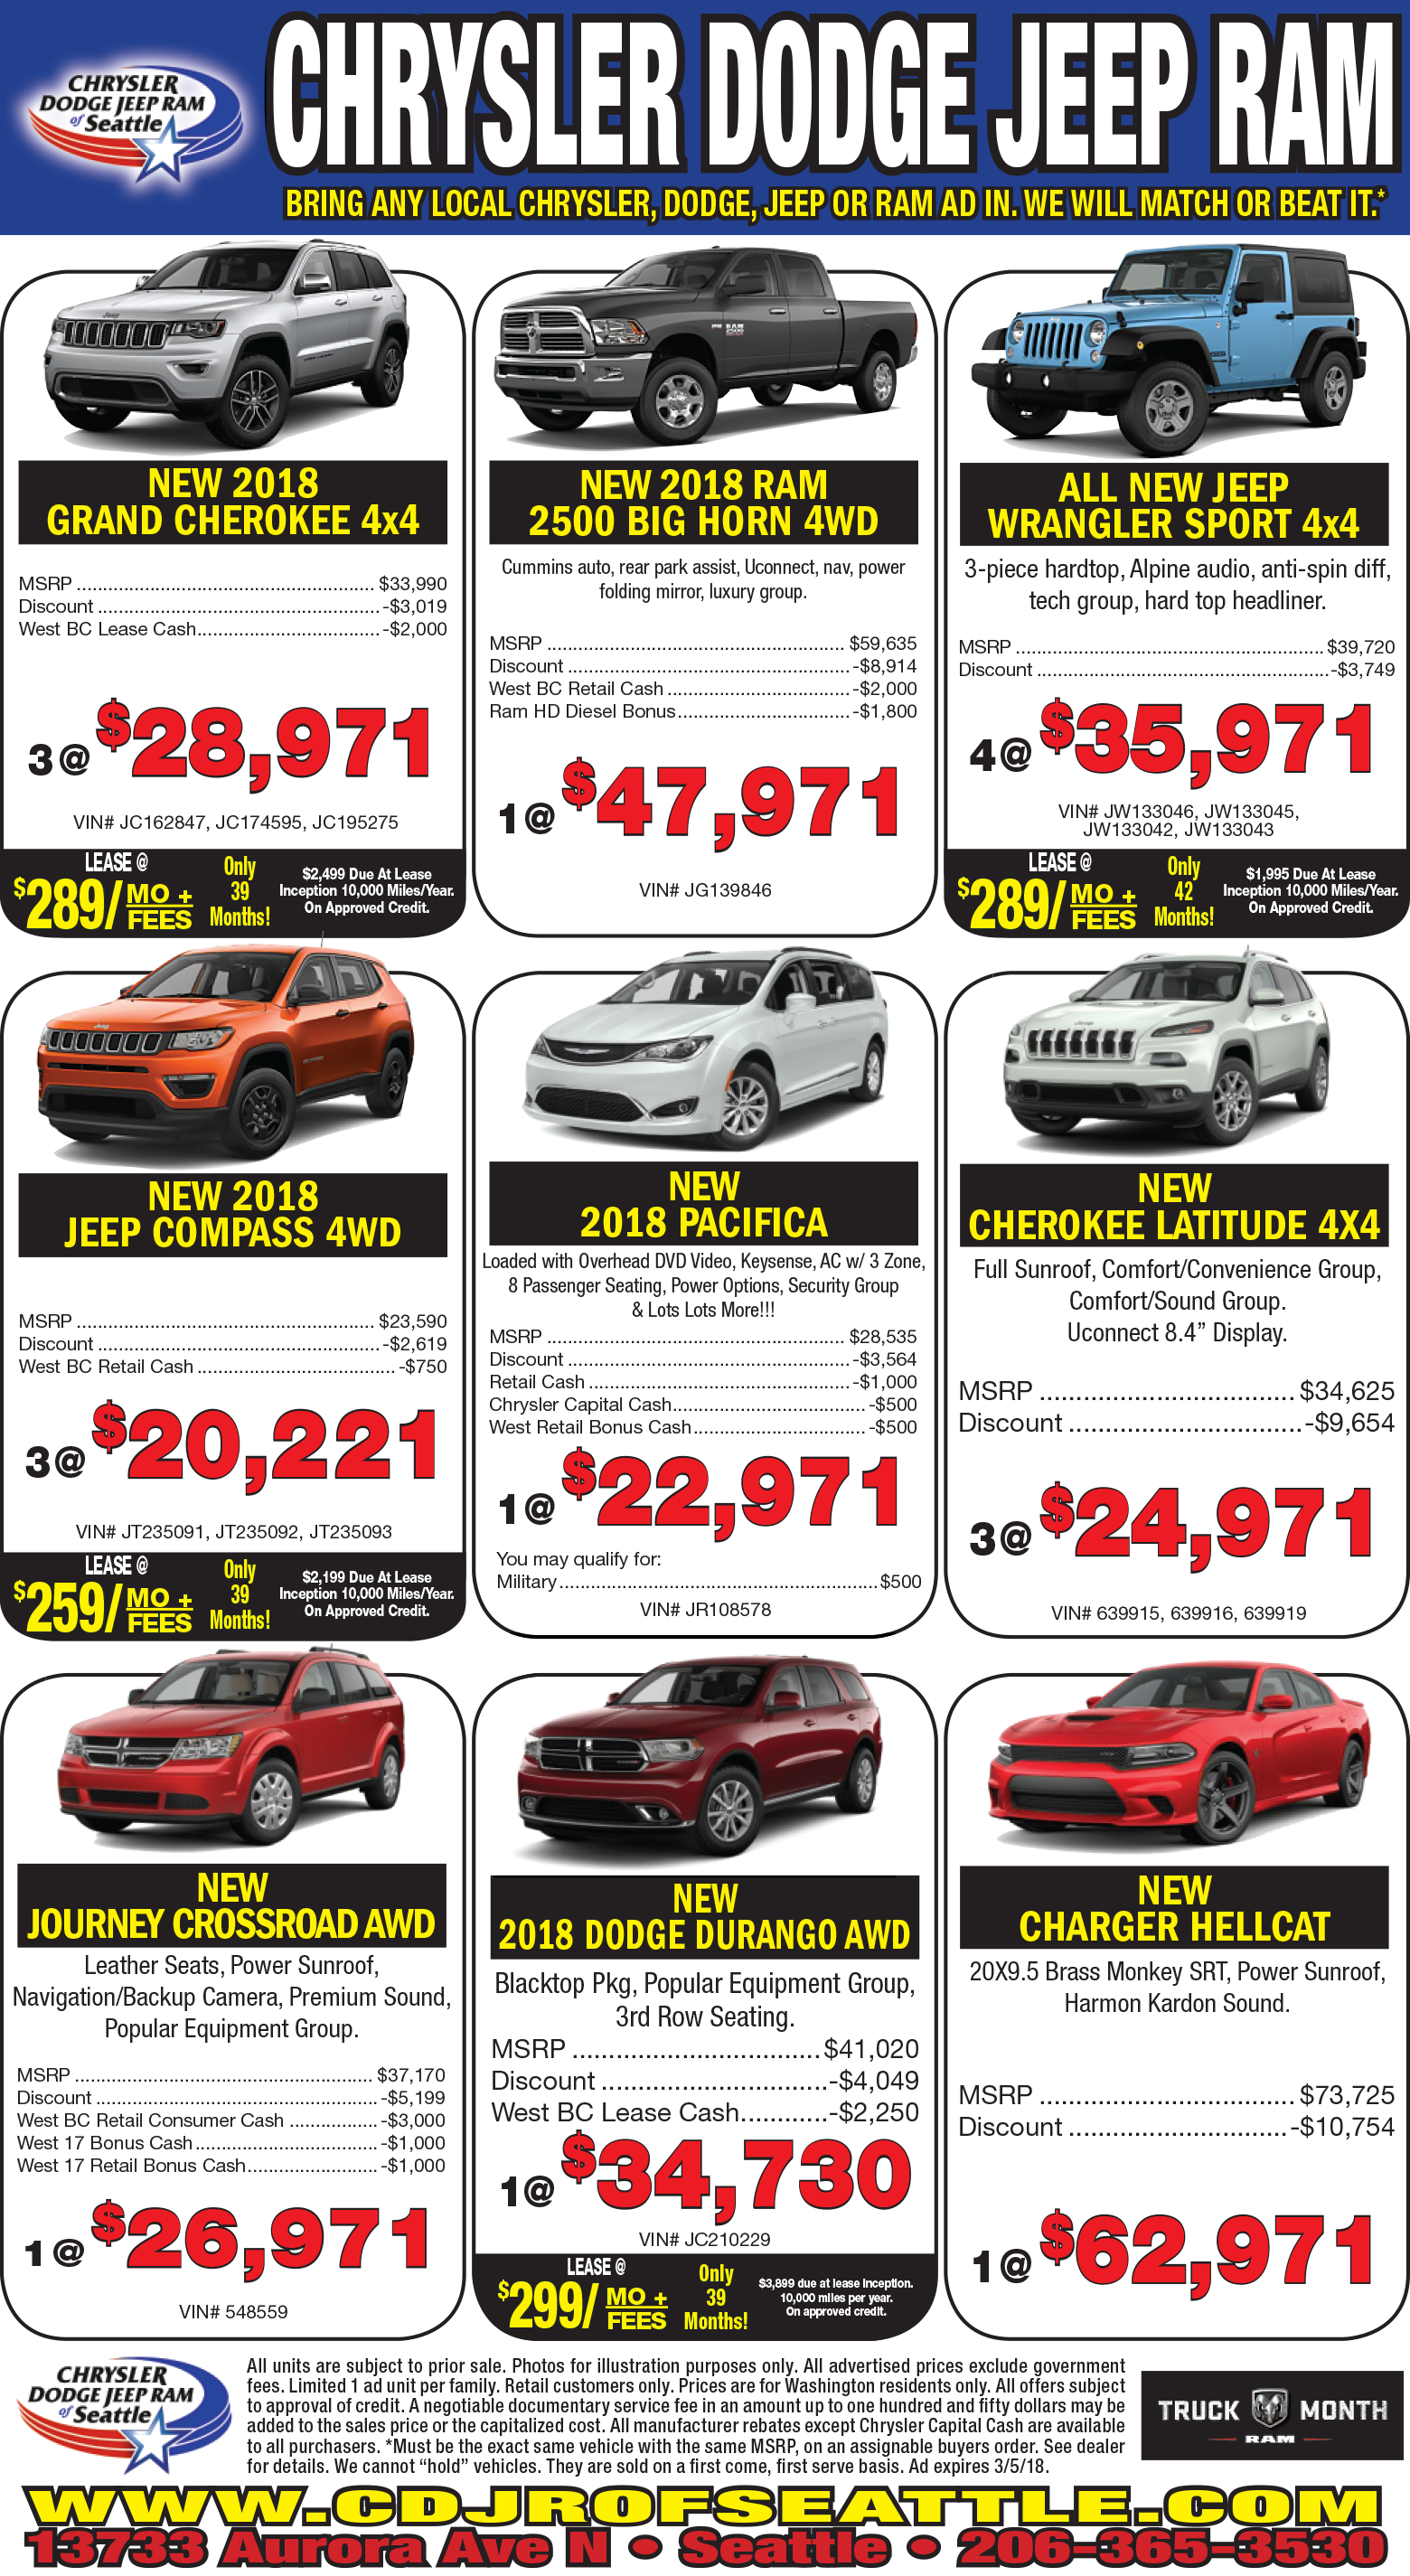 Chrysler Dodge Jeep Ram Of Seattle New Chrysler Dodge Jeep - Chrysler dealer seattle